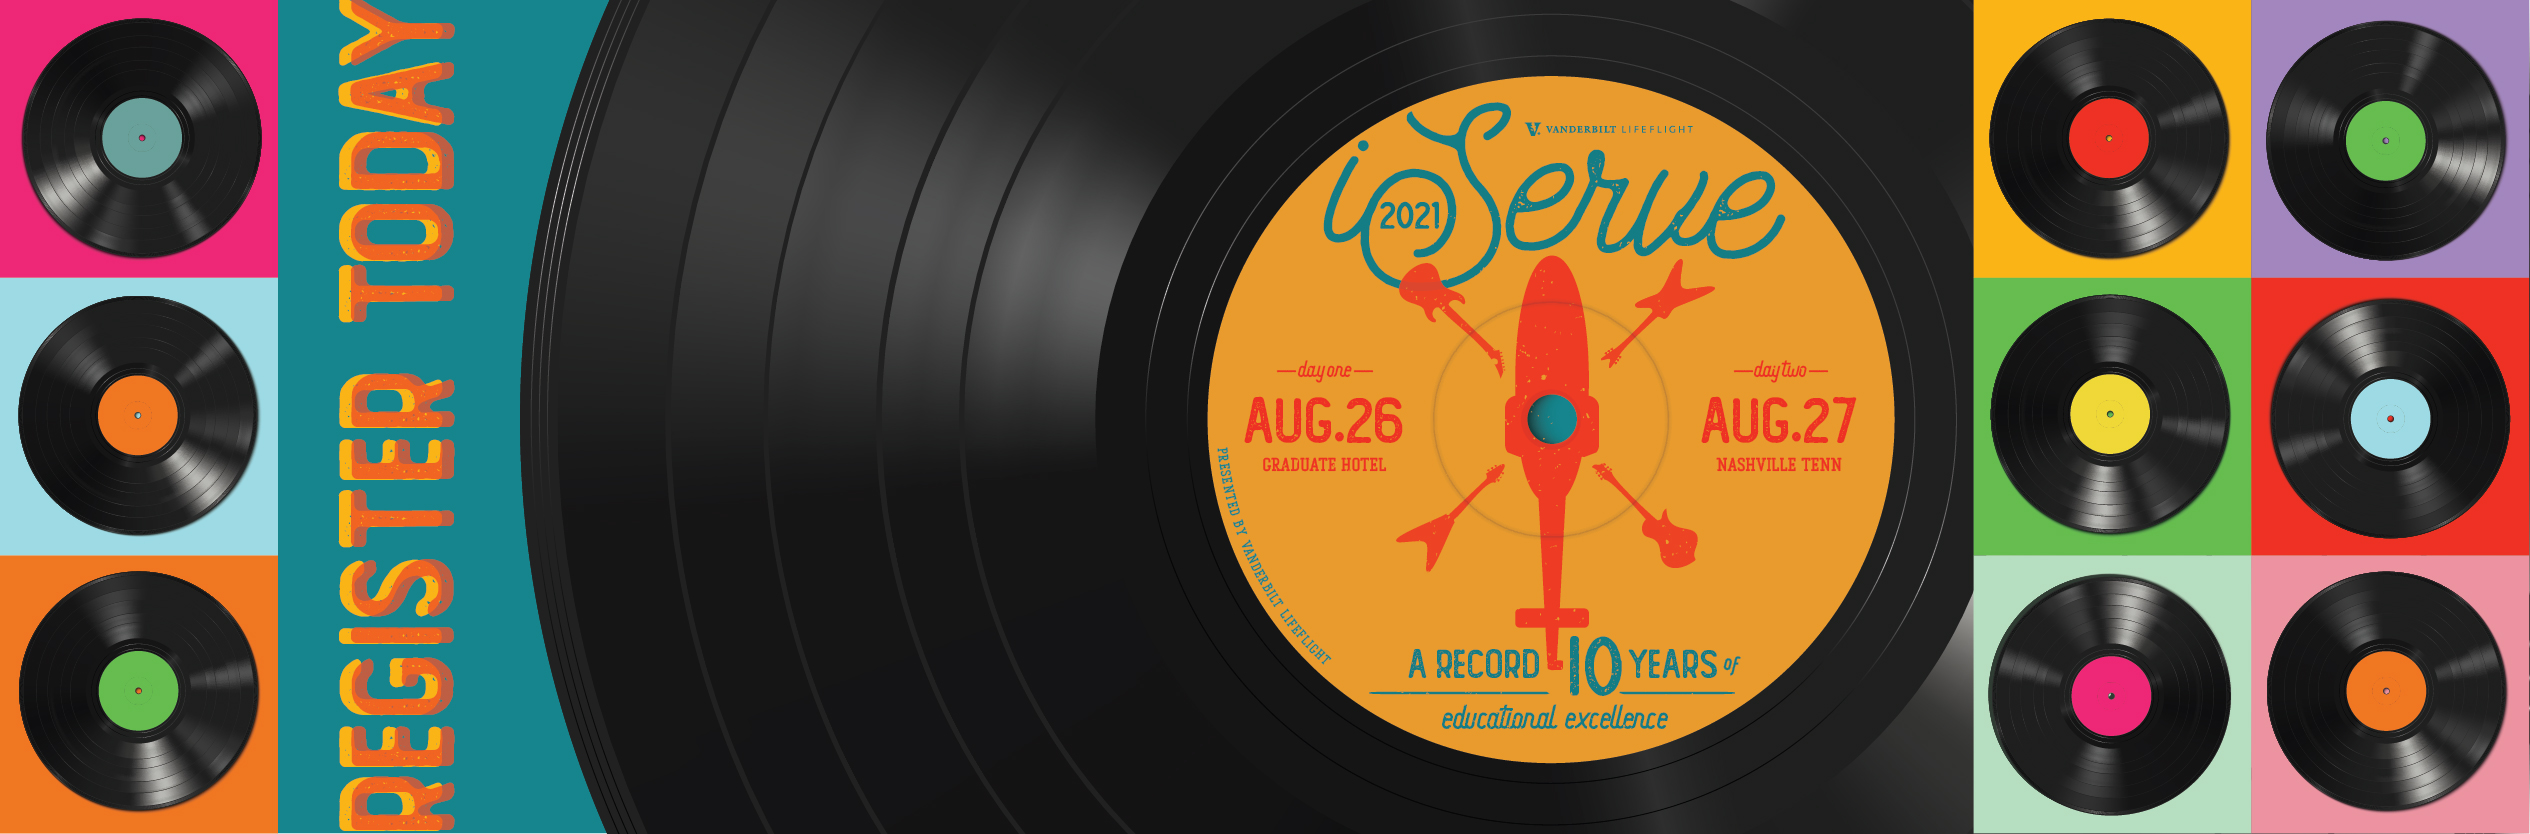 iServe - A record 10 Years of Education Excellence